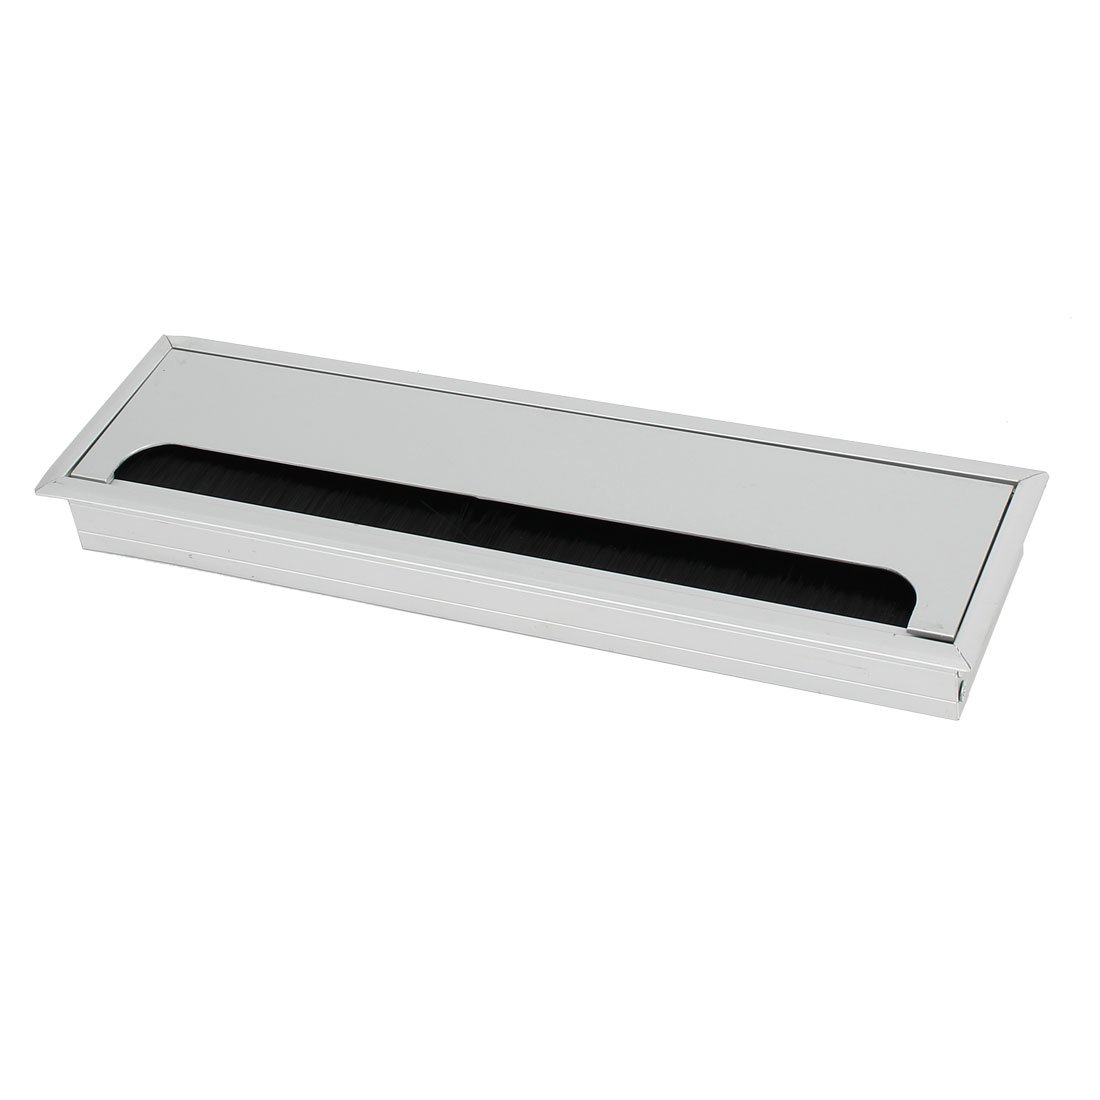 uxcell Computer Desk 280mmx80mm Aluminum Rectangle Shape Grommet Wire Cable Hole Cover by uxcell